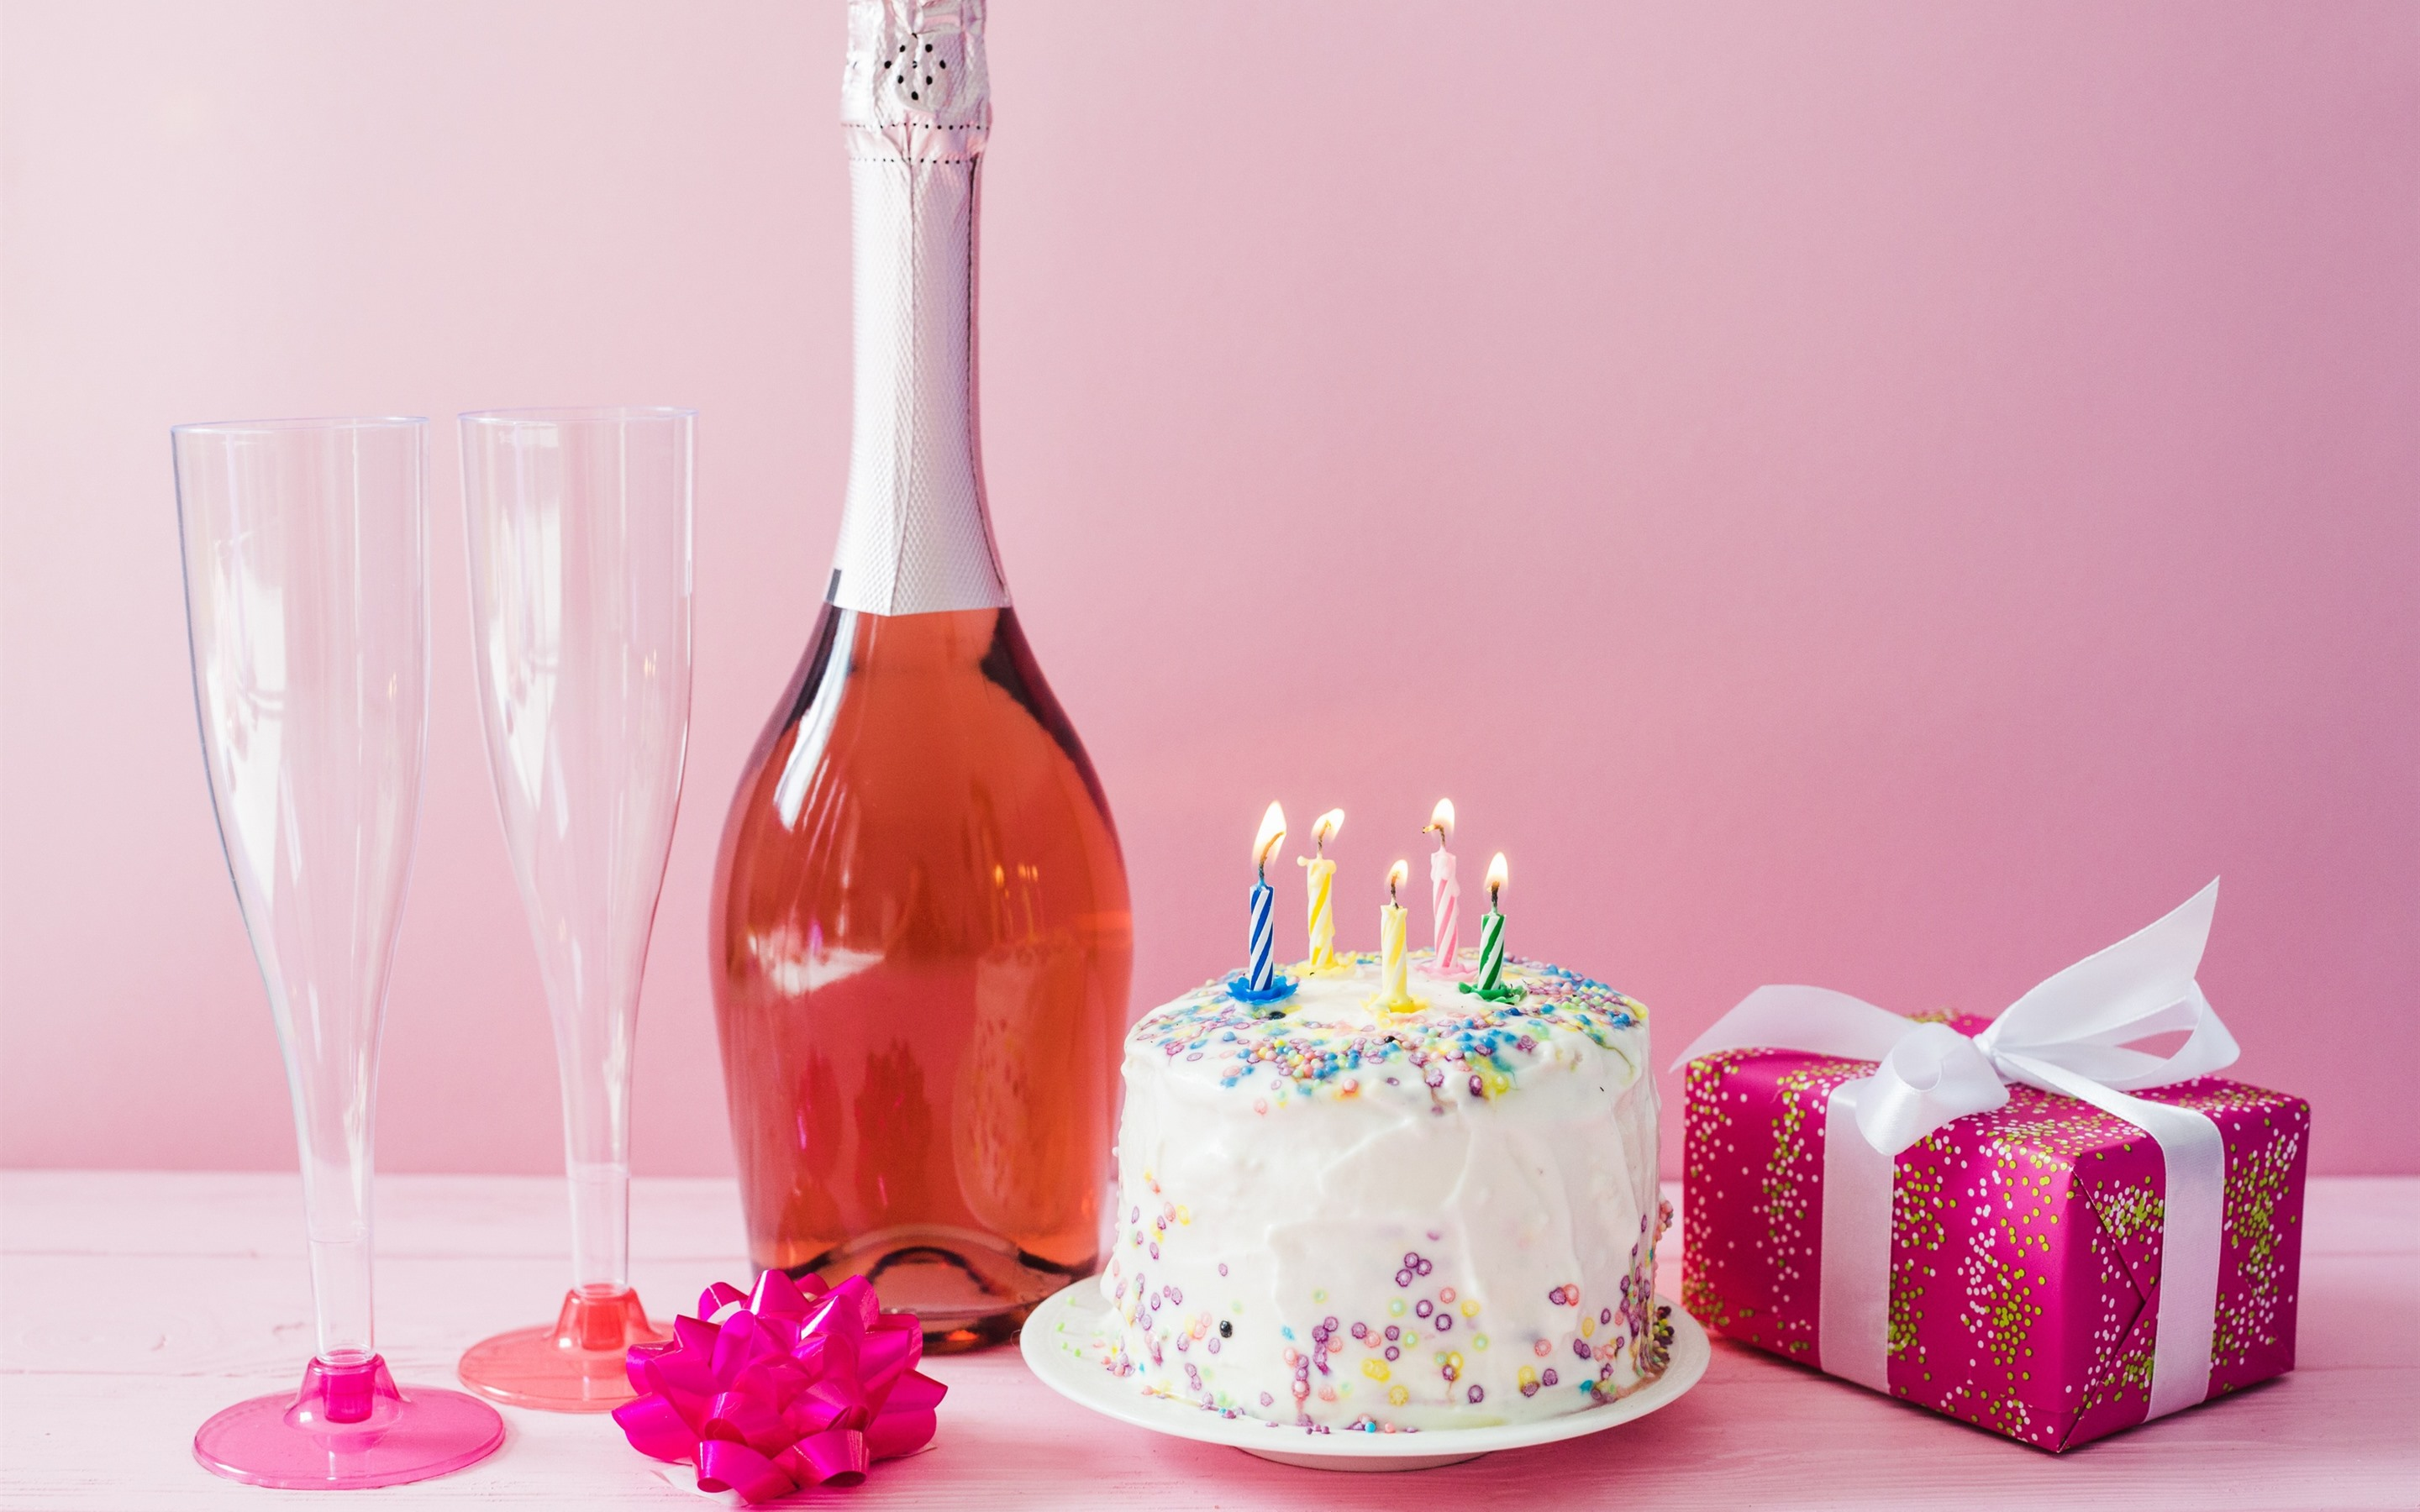 Wallpaper Birthday Cake Candles Fire Wine Gift 2880x1800 HD